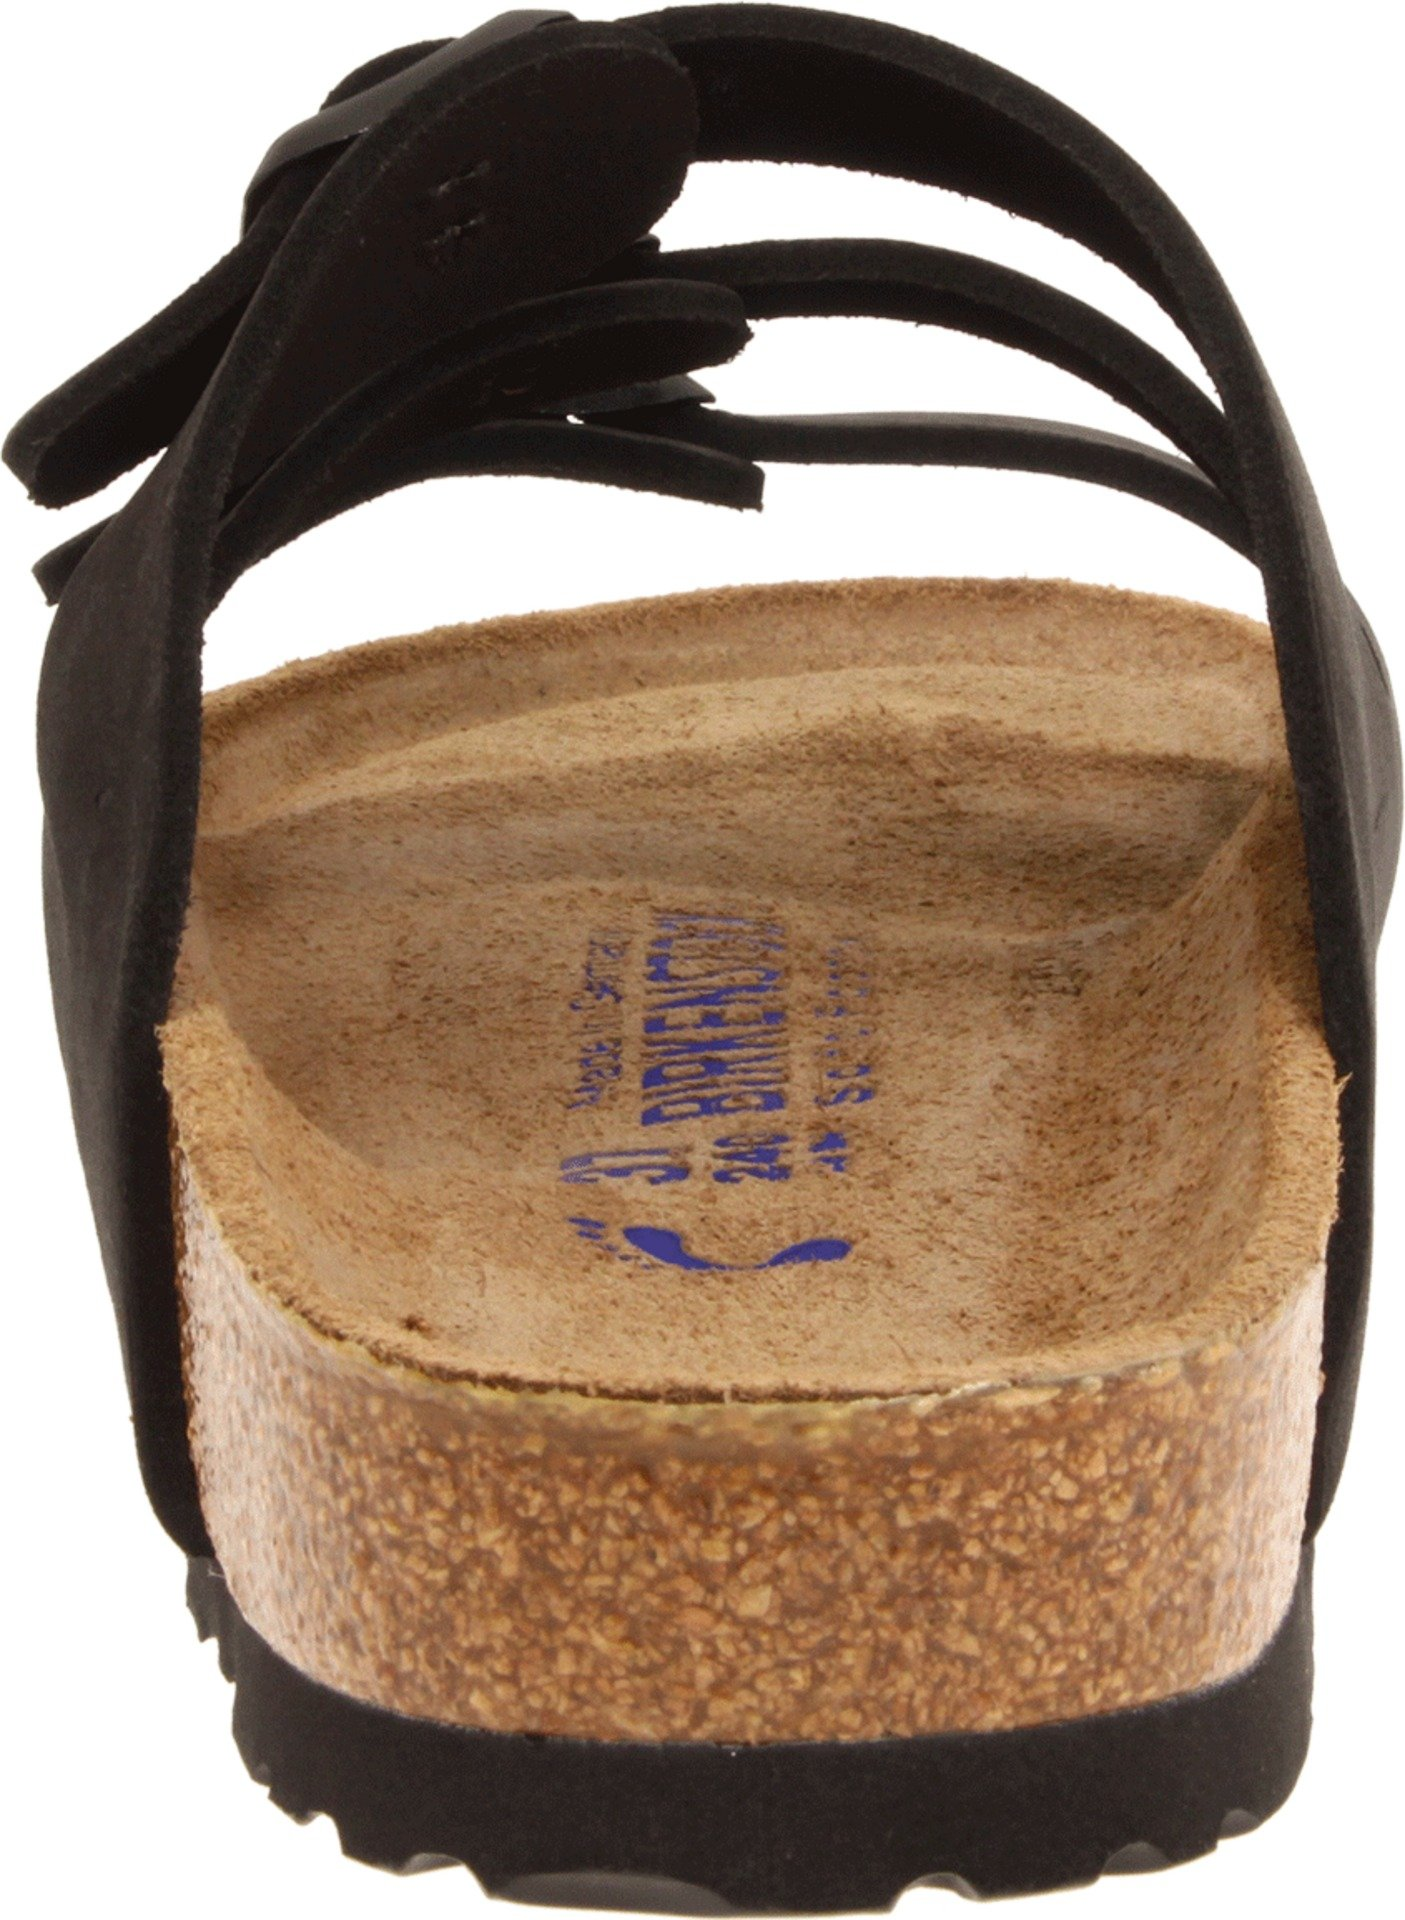 Birkenstock Women's Florida Soft Footbed Birko-Flor  Black Nubuck Sandals - 37 M EU / 6-6.5 B(M) US by Birkenstock (Image #2)